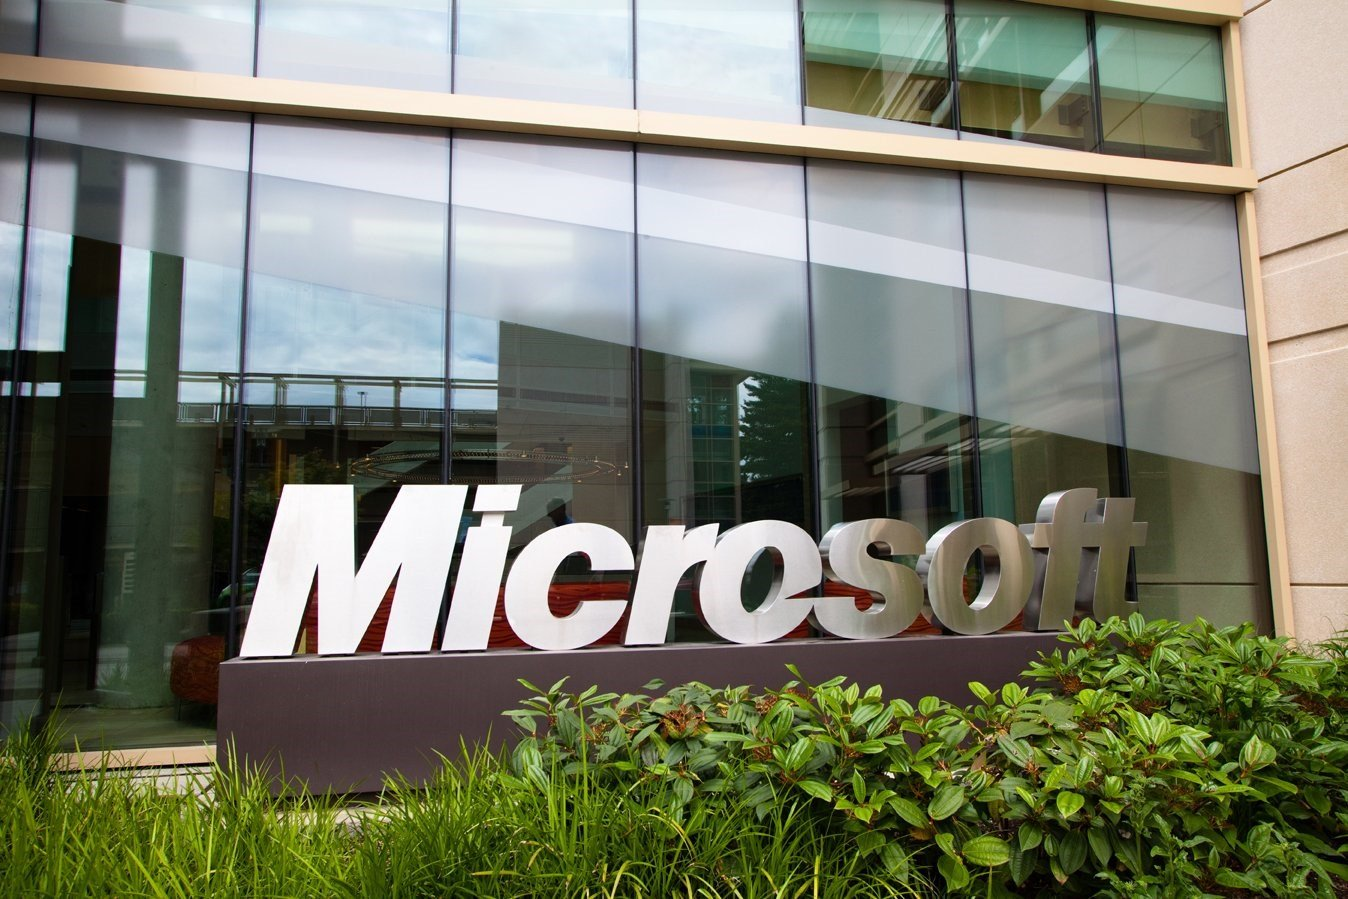 File- Microsoft has received hundreds of harassment and discrimination complaints from female employees in recent years, according to court documents made public this week.